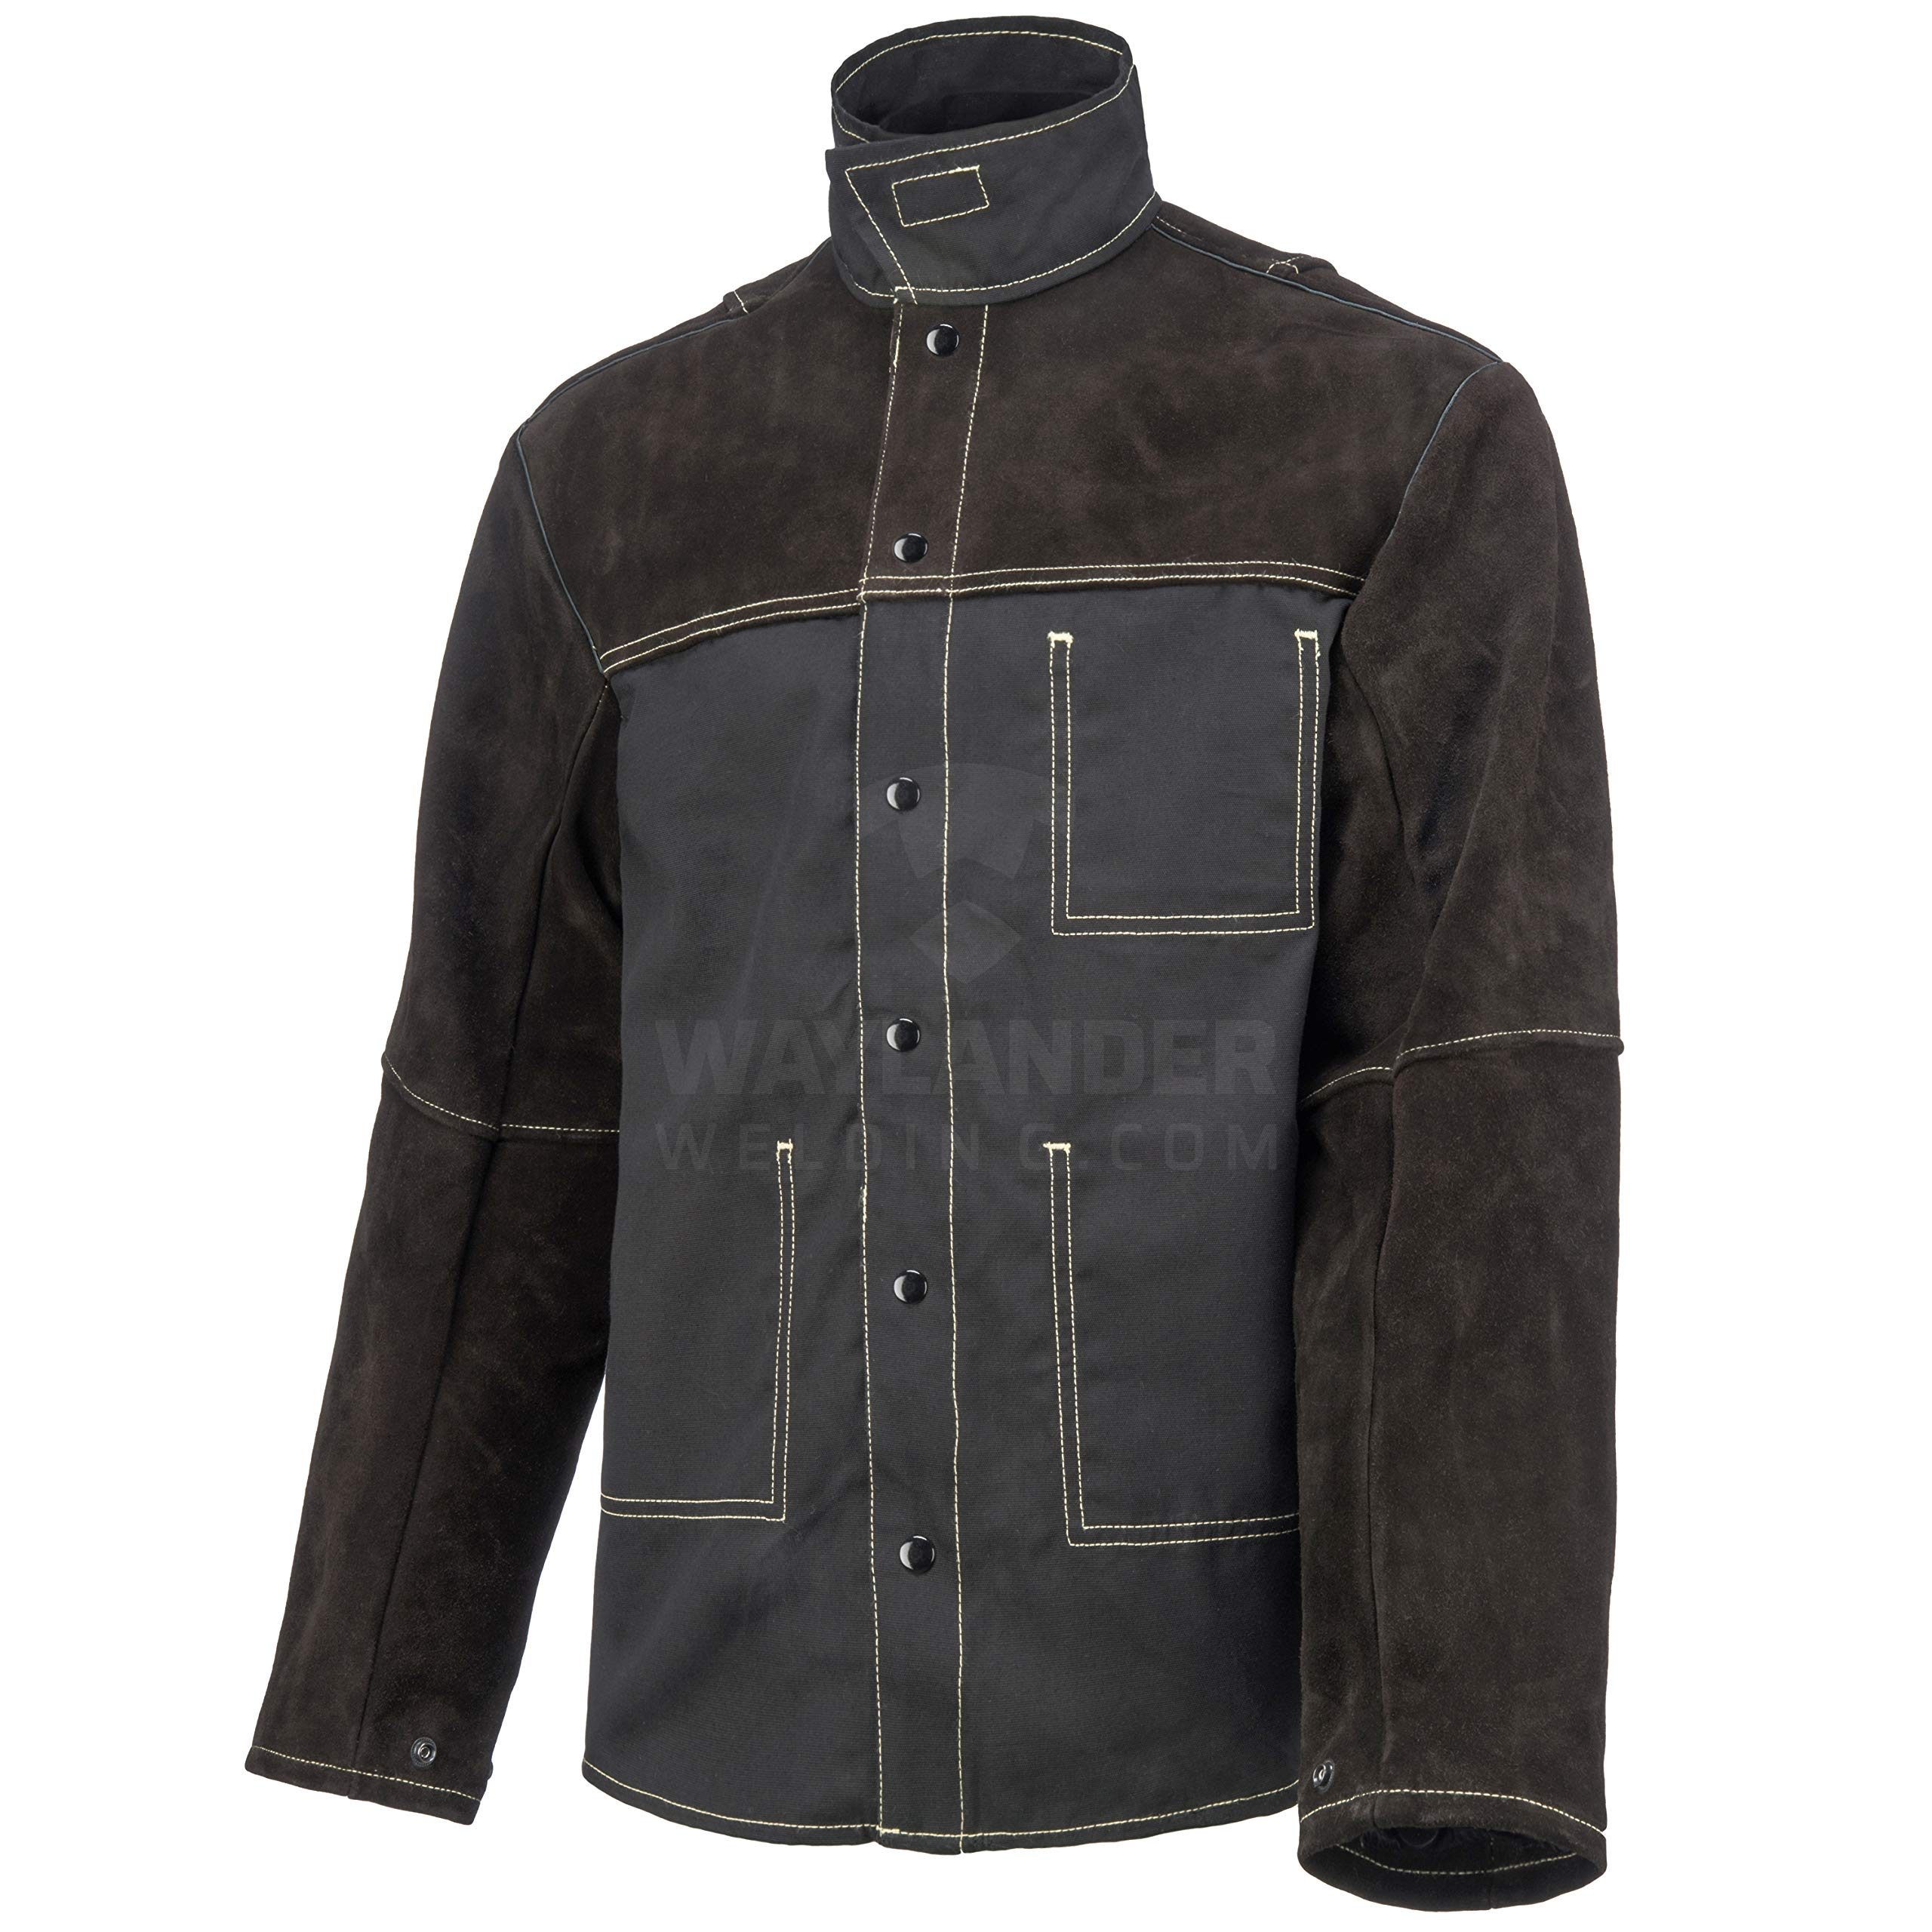 Waylander Welding Jacket XL Split Leather Heat Fire Resistant Cotton Kevlar Stitched Cowhide Dark Brown - XL